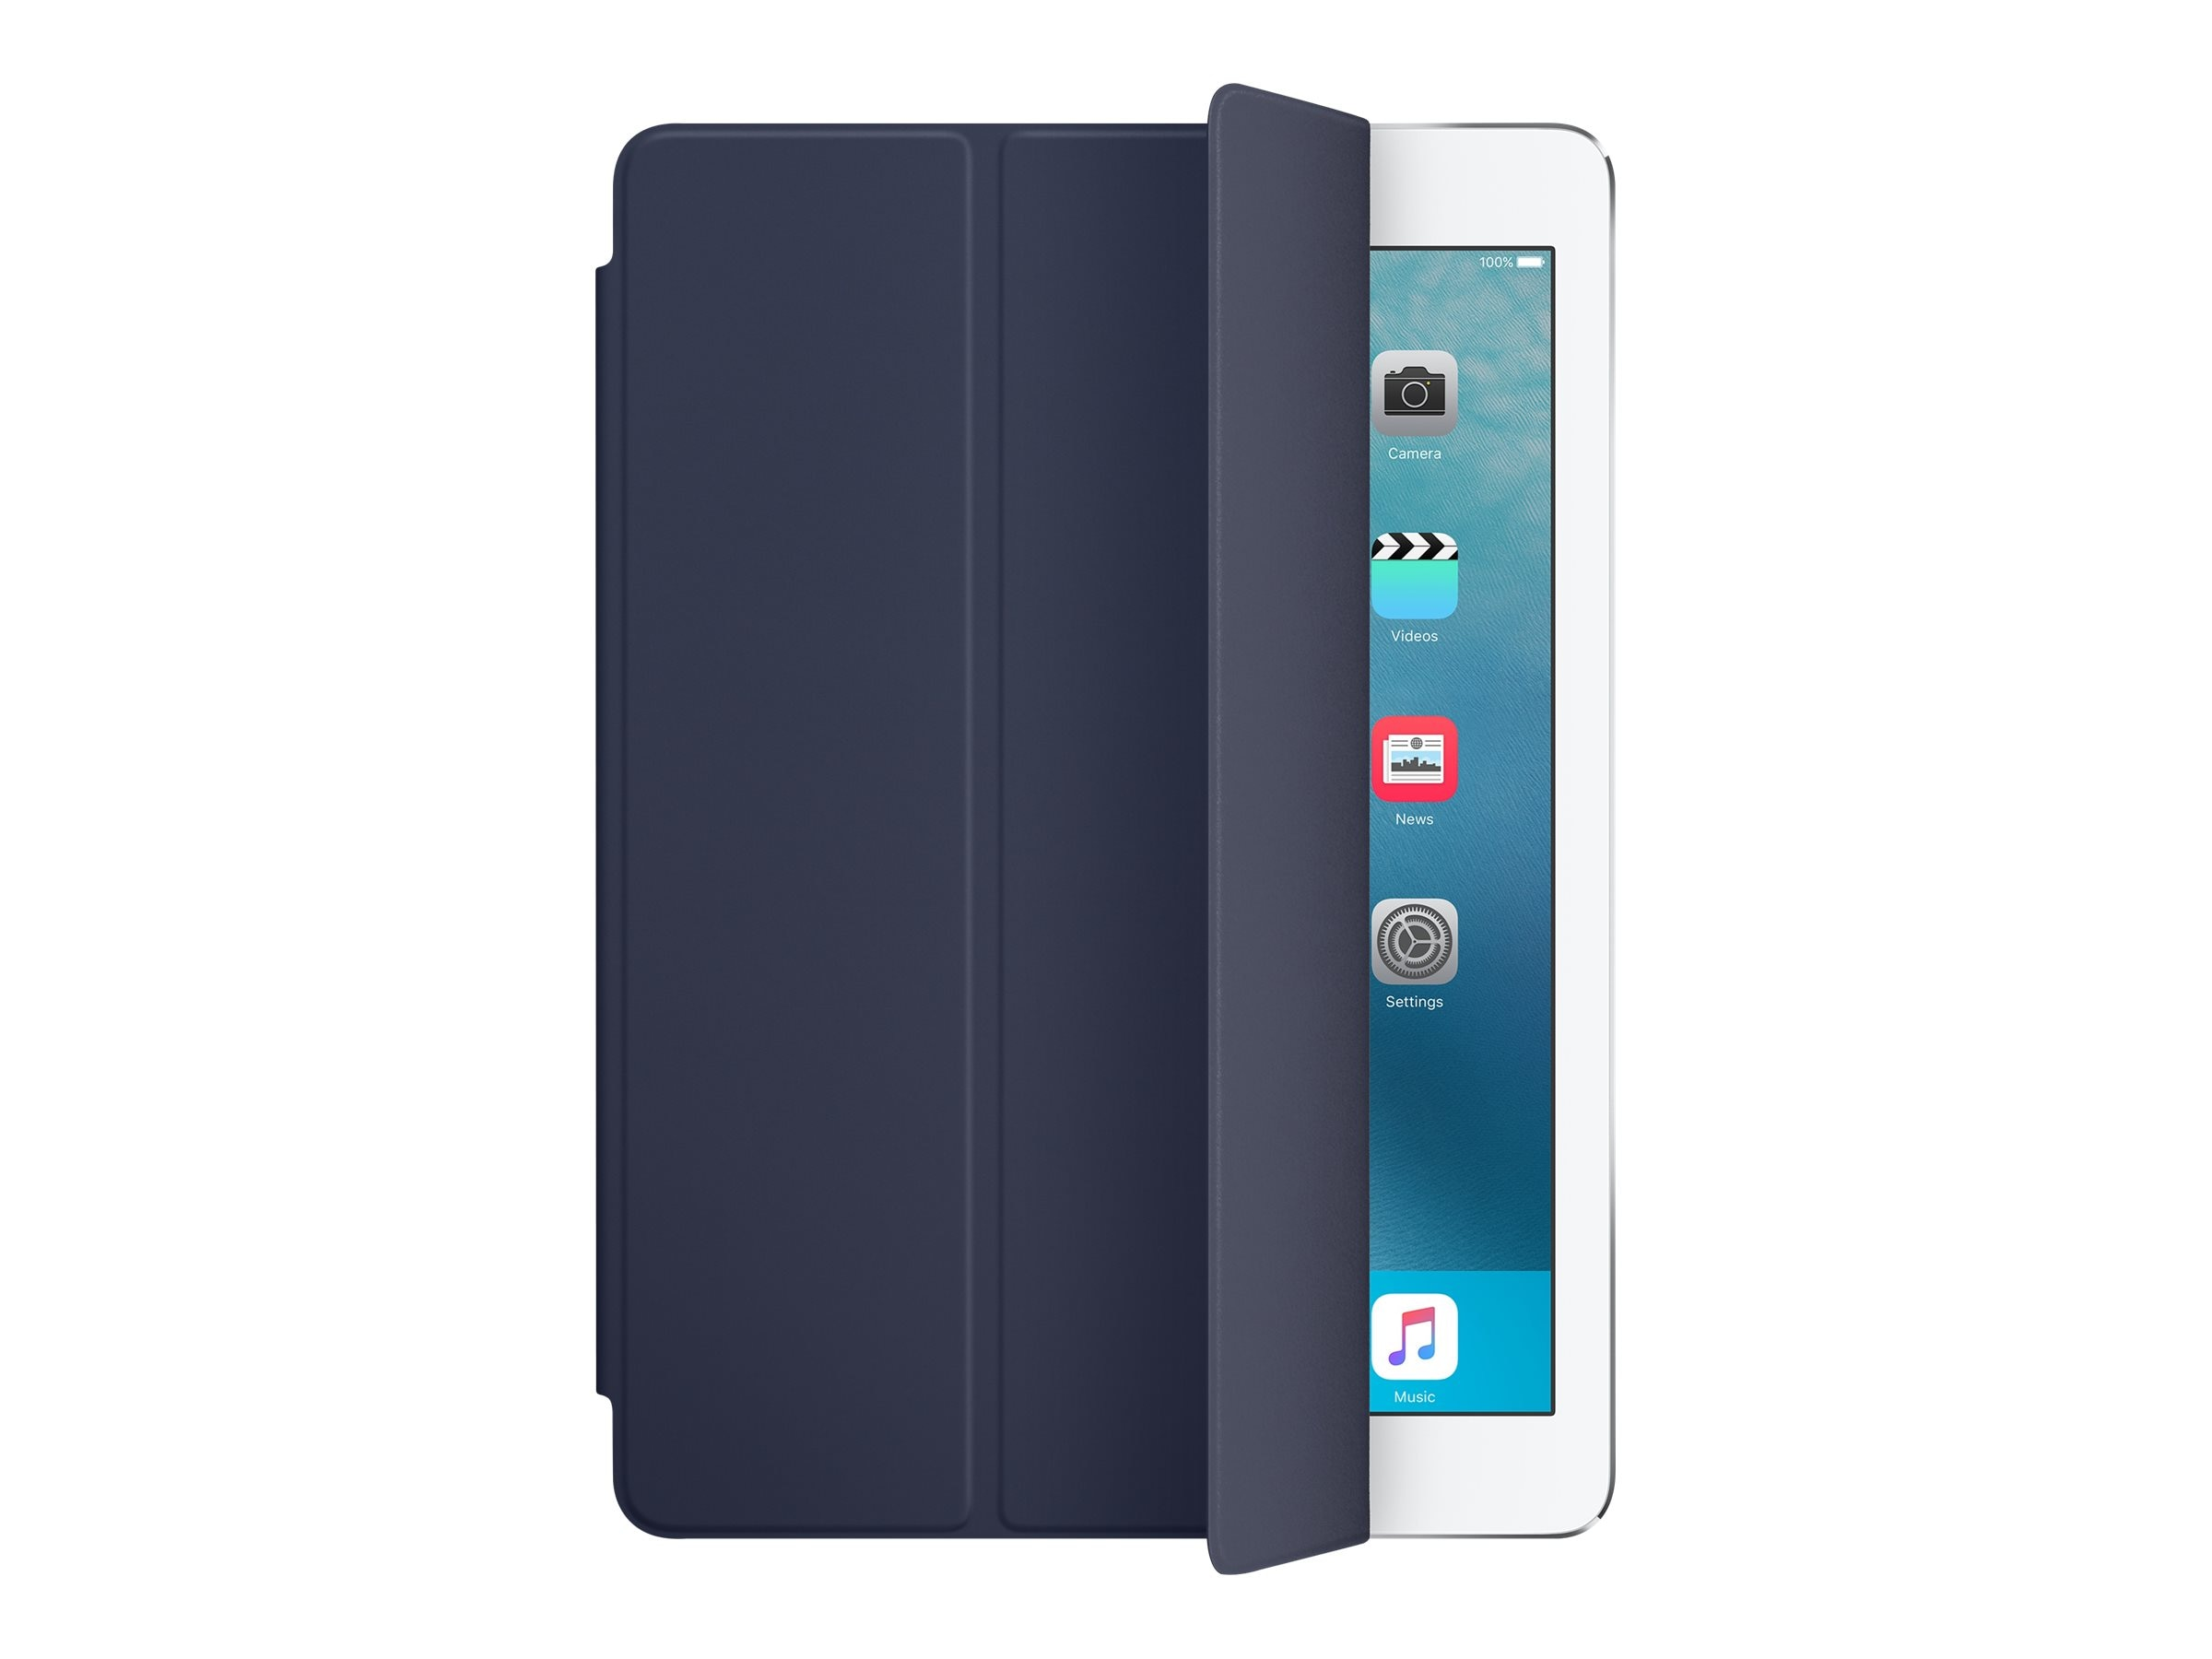 Apple Smart Cover for iPad Pro 9.7, Midnight Blue, MM2C2AM/A, 31812052, Carrying Cases - Tablets & eReaders